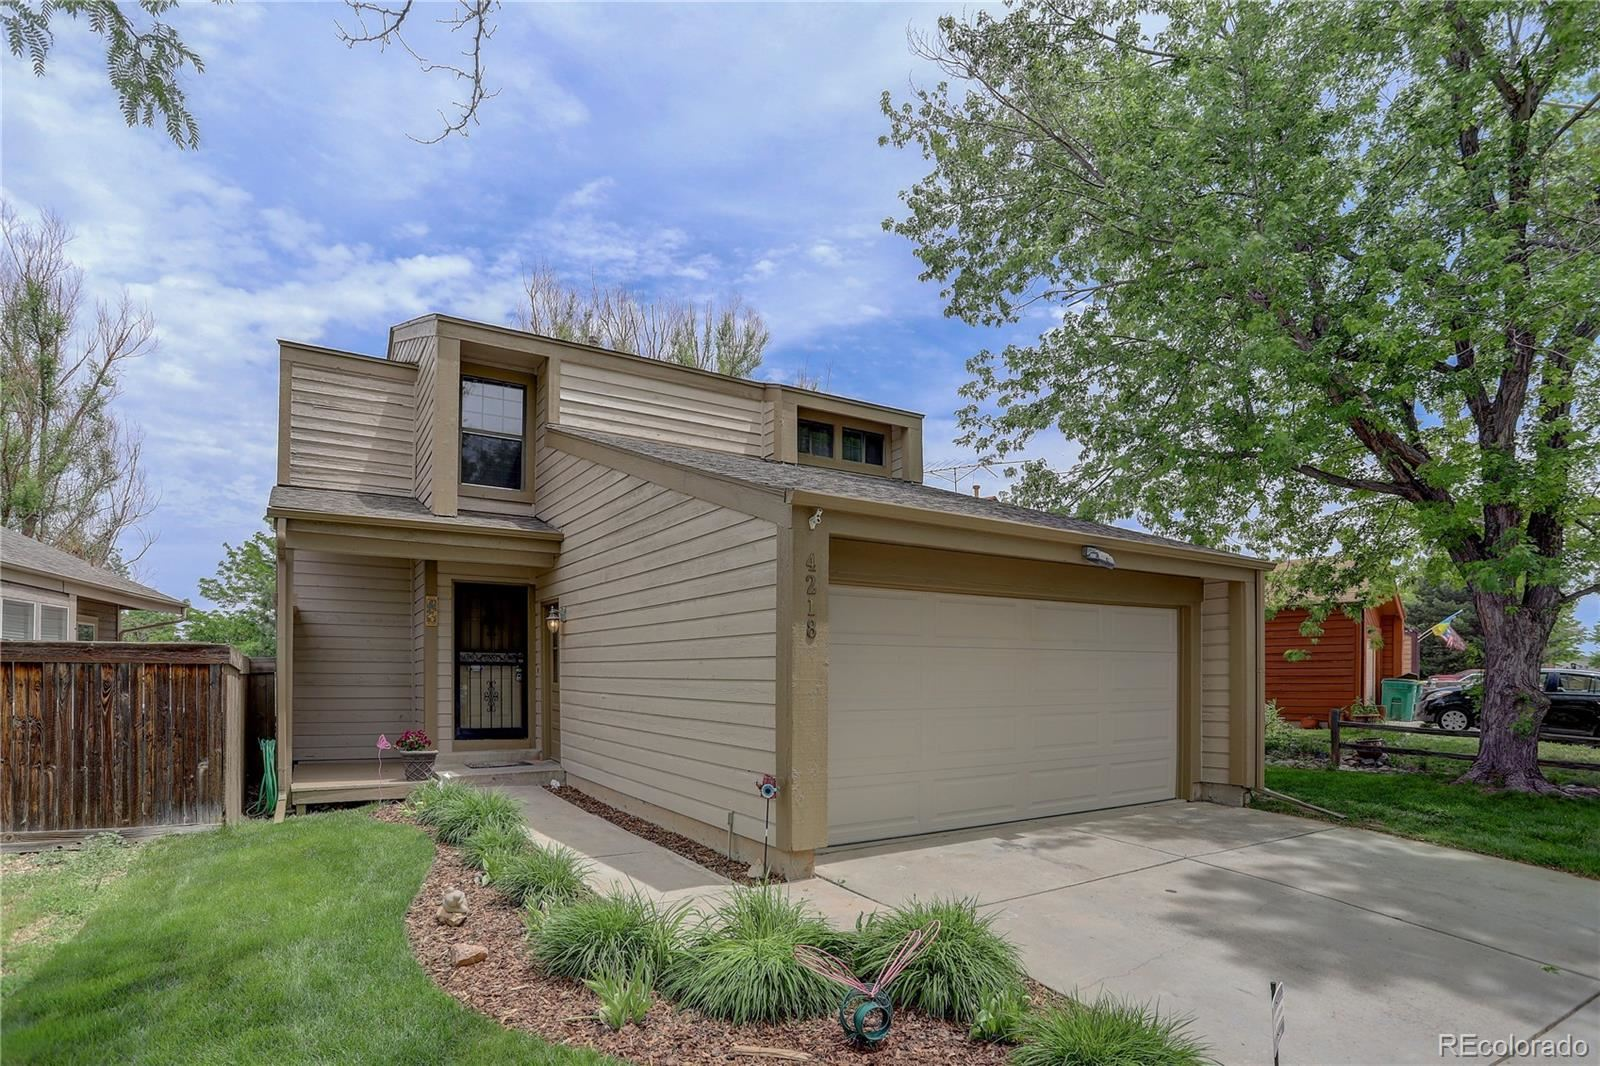 4218 S Richfield Street, Aurora, CO 80013 - #: 4635232